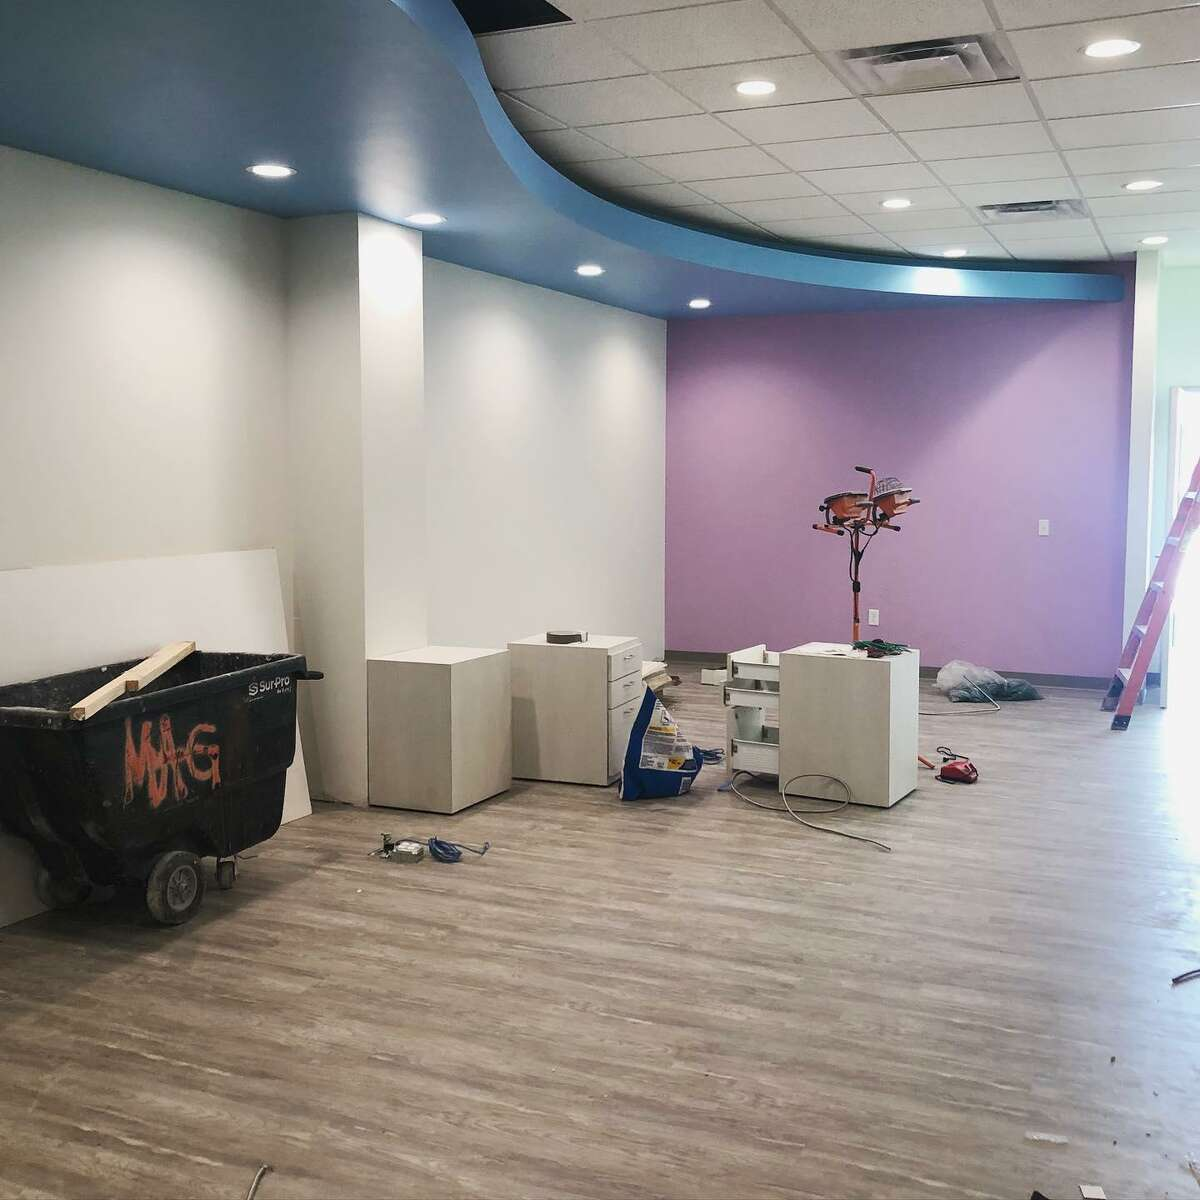 Cavity Patrol Pediatric Dentistry plans to open at the end of July. The dentistry practice on Fry Road and Longenbaugh will contribute to the Cy-Hope Backpack Program.